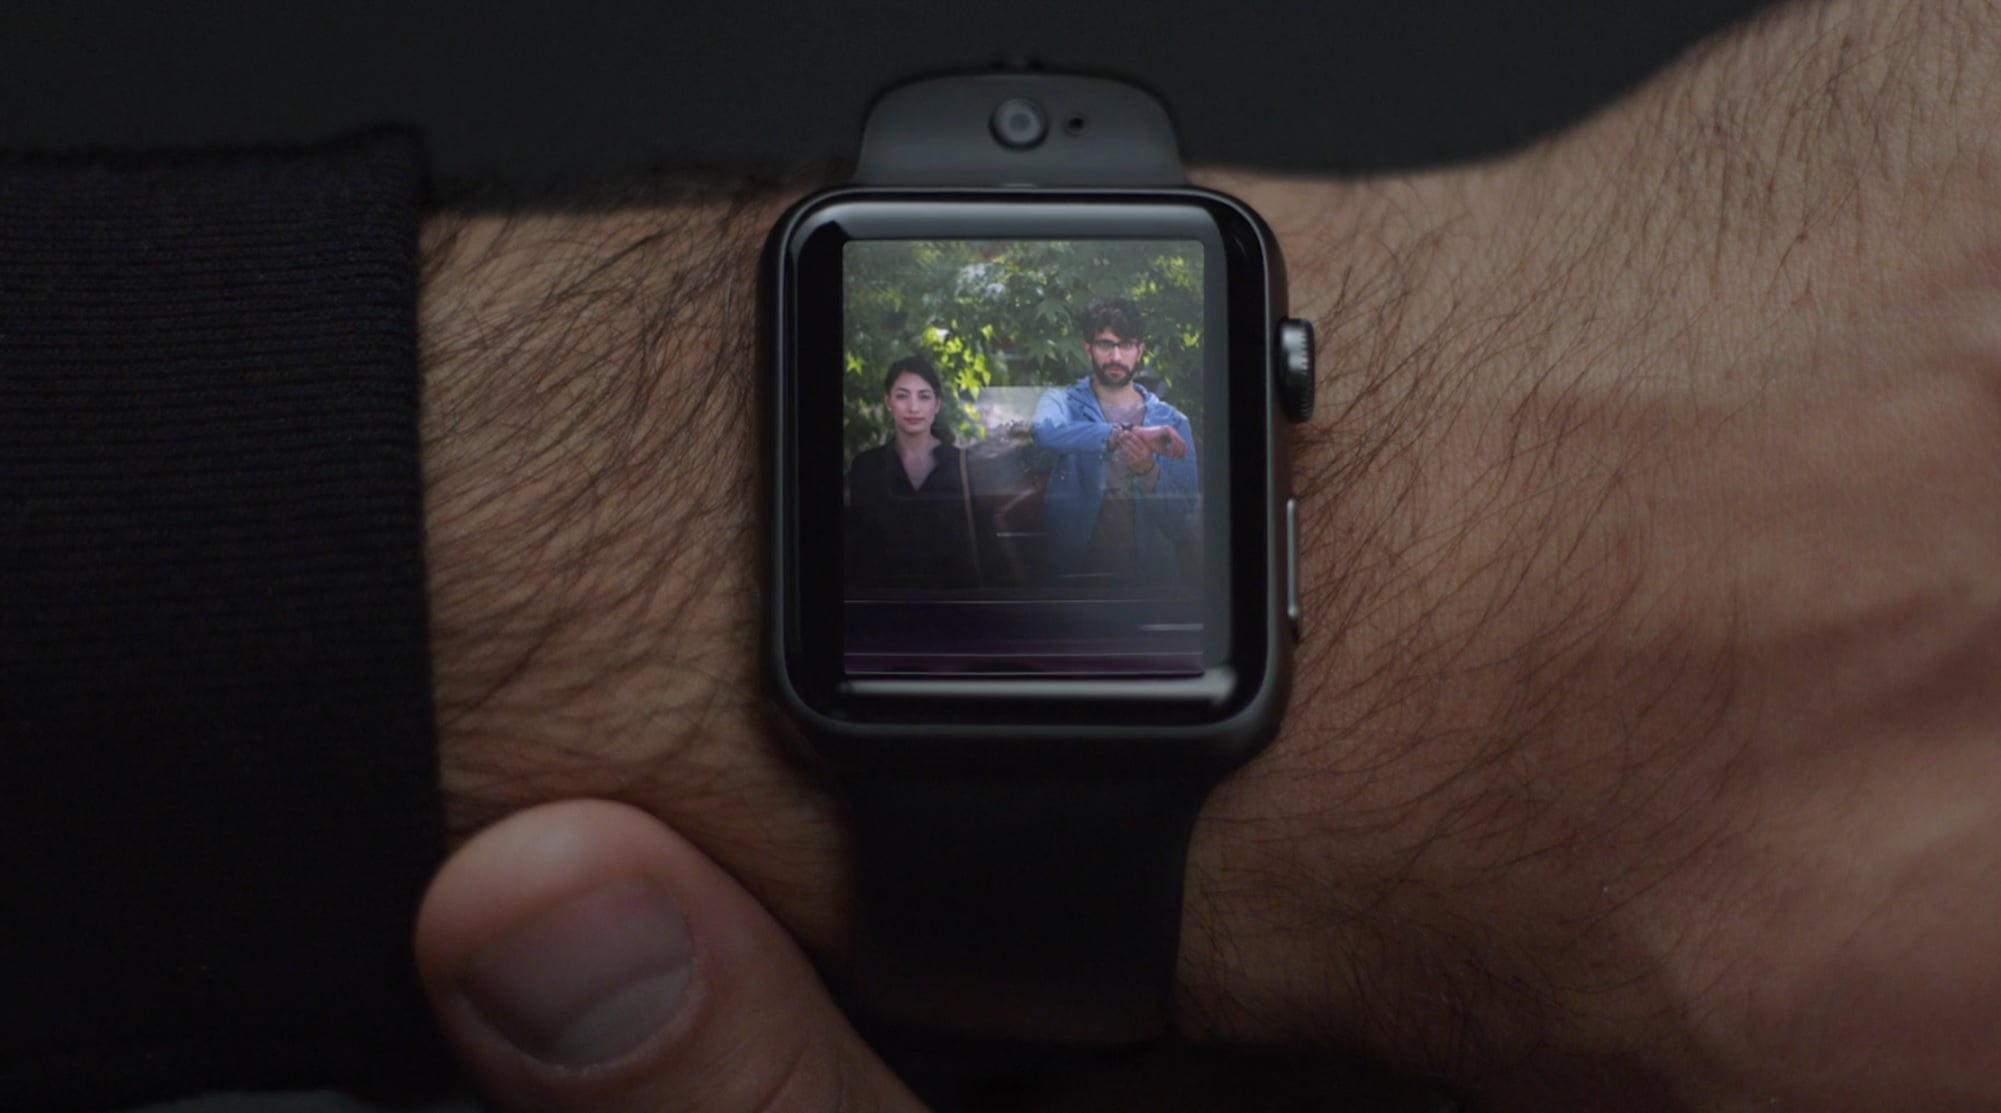 James Bond aprobuje: pasek do Apple Watch z aparatem fotograficznym 22